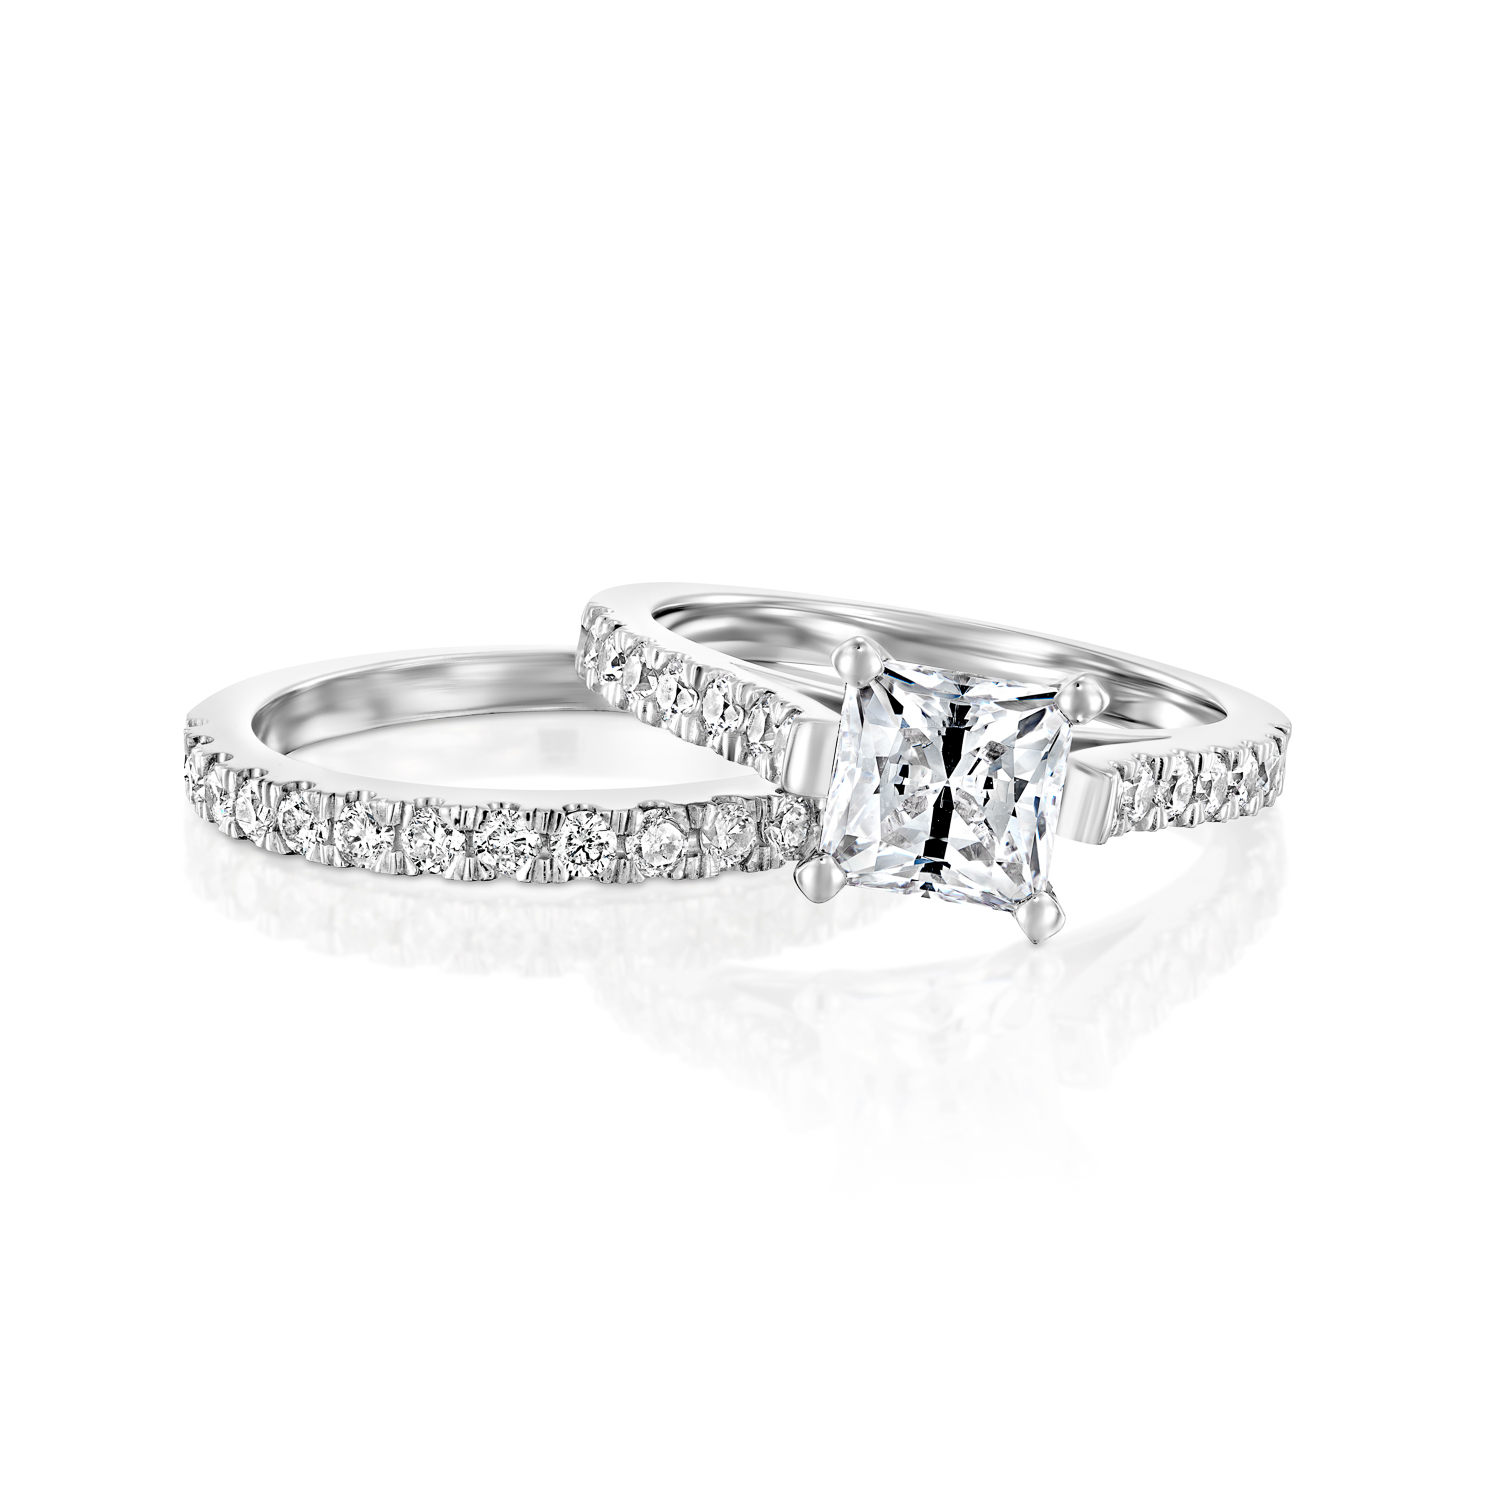 enhanced 14k white gold princess cut diamond engagement. Black Bedroom Furniture Sets. Home Design Ideas